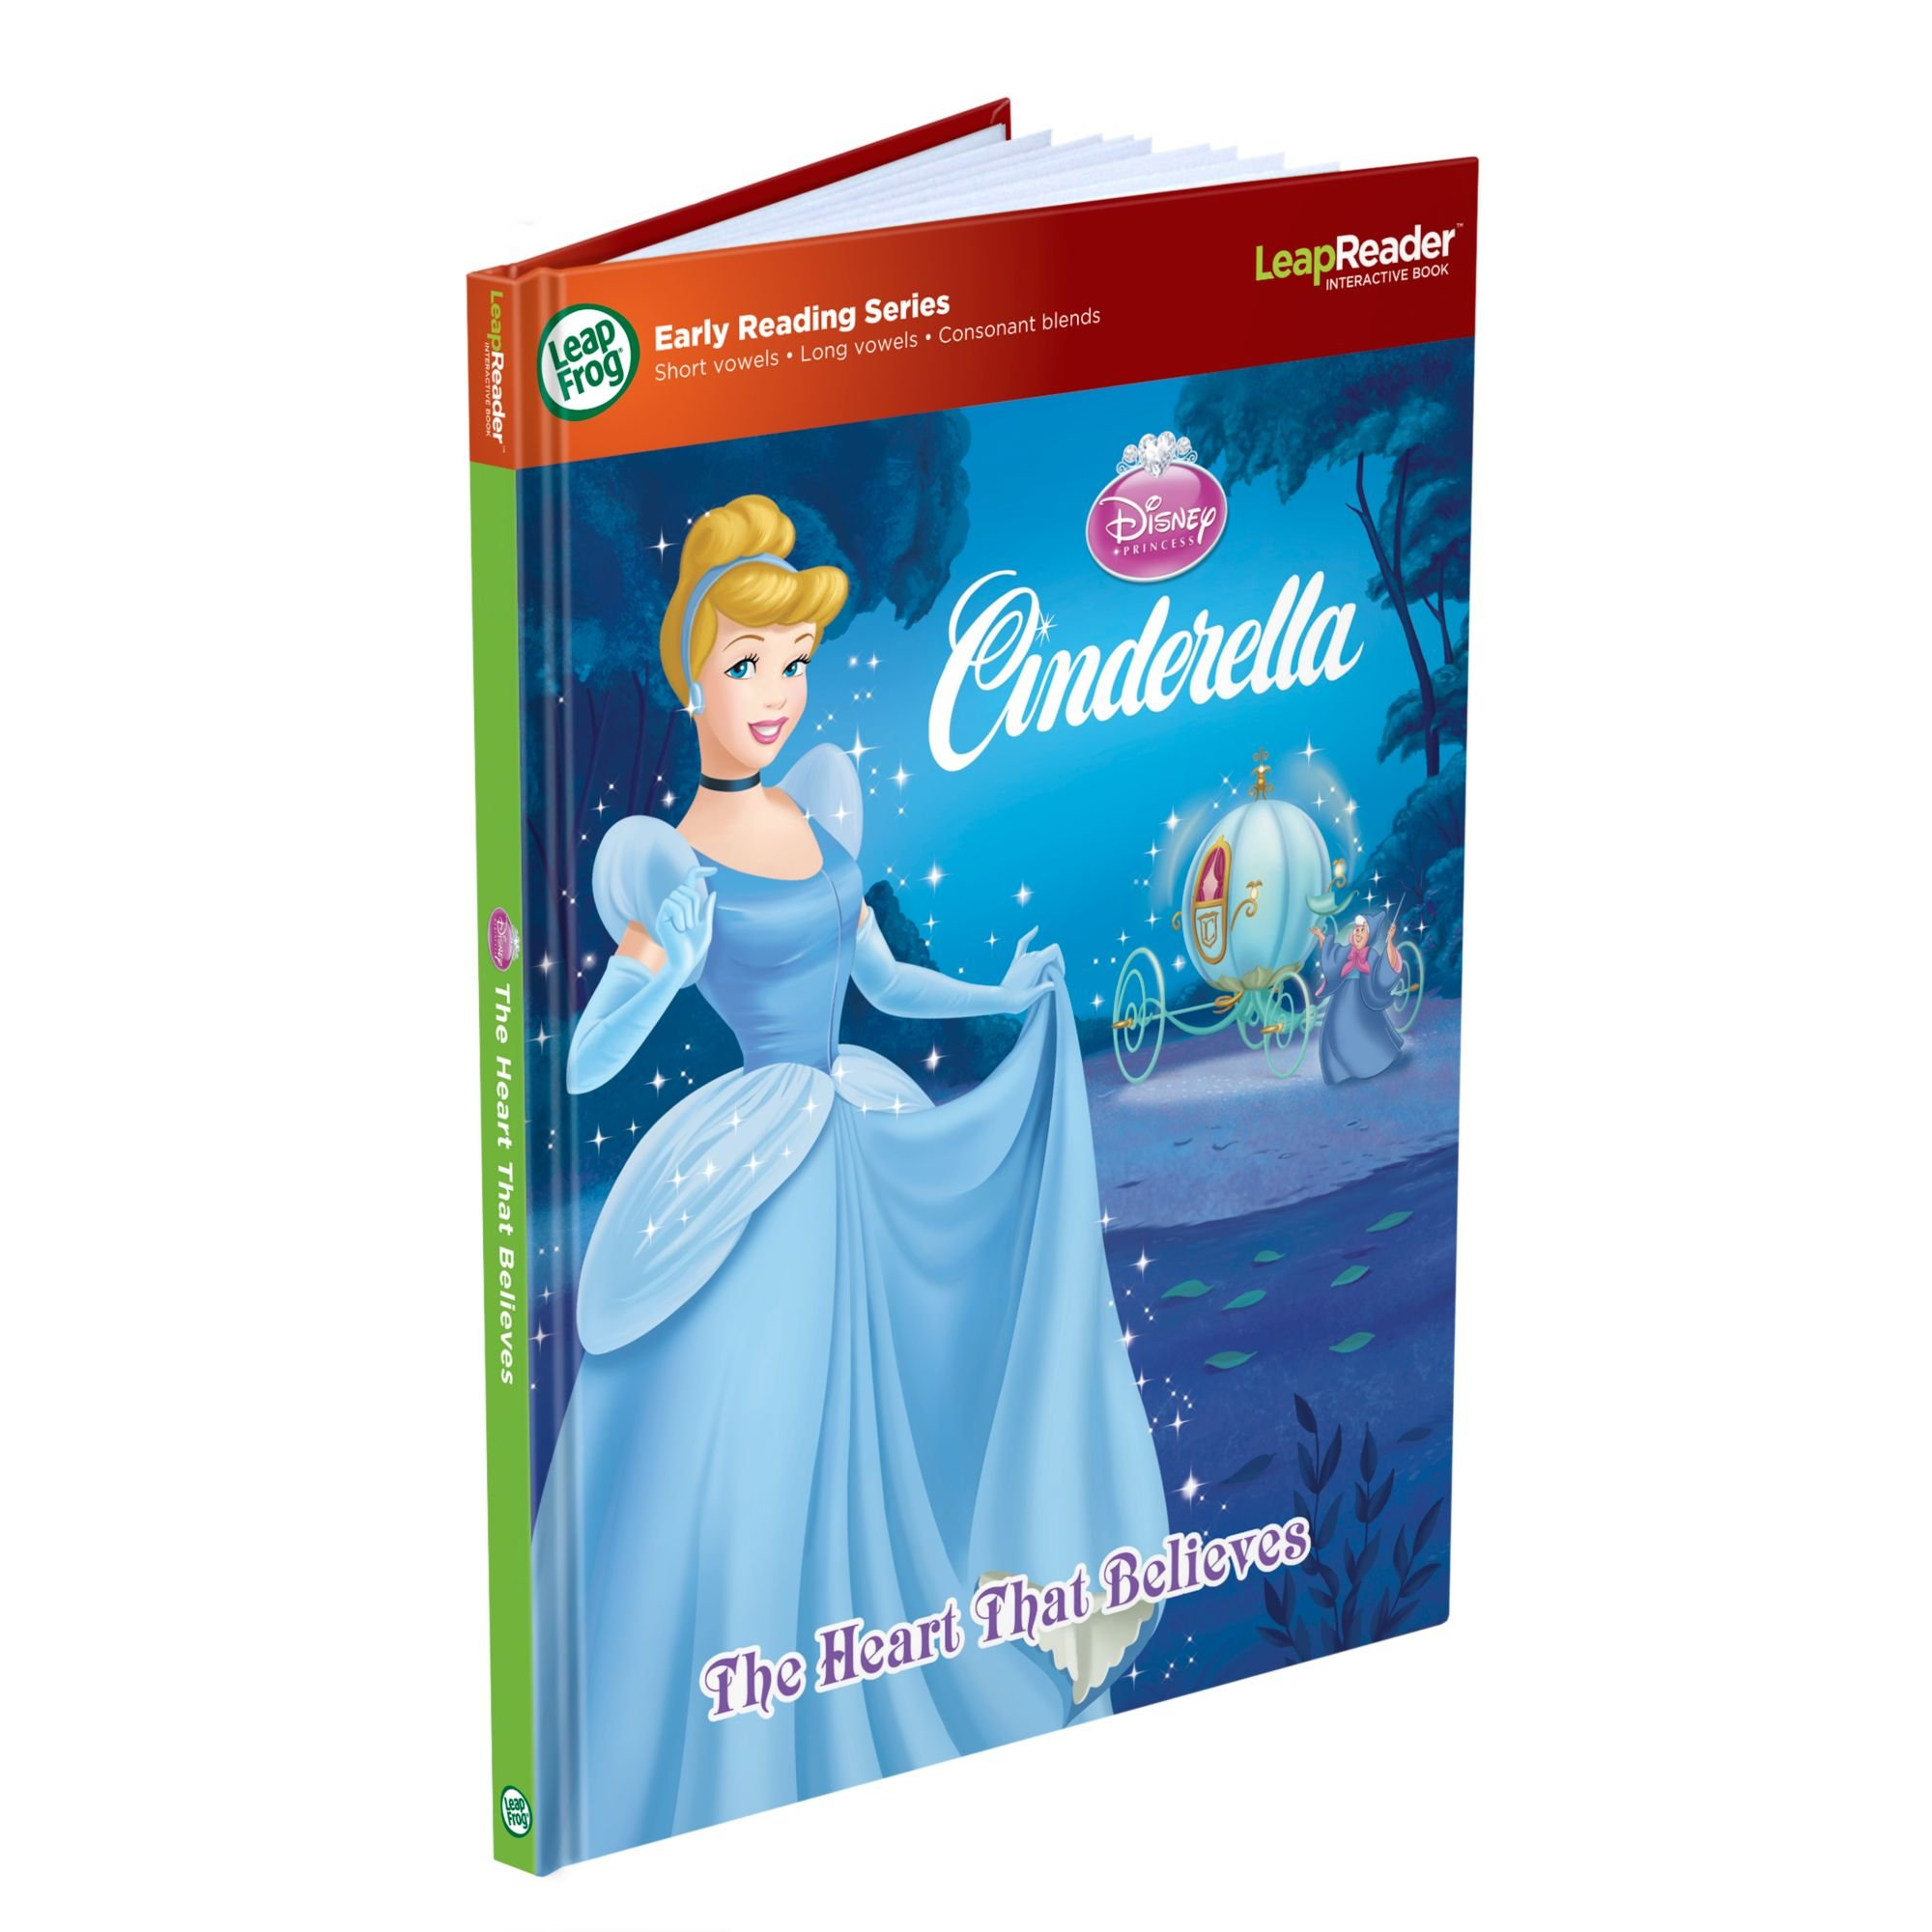 LeapFrog LeapReader Book: Disney Cinderella: The Heart That Believes (works with Tag) by LeapFrog